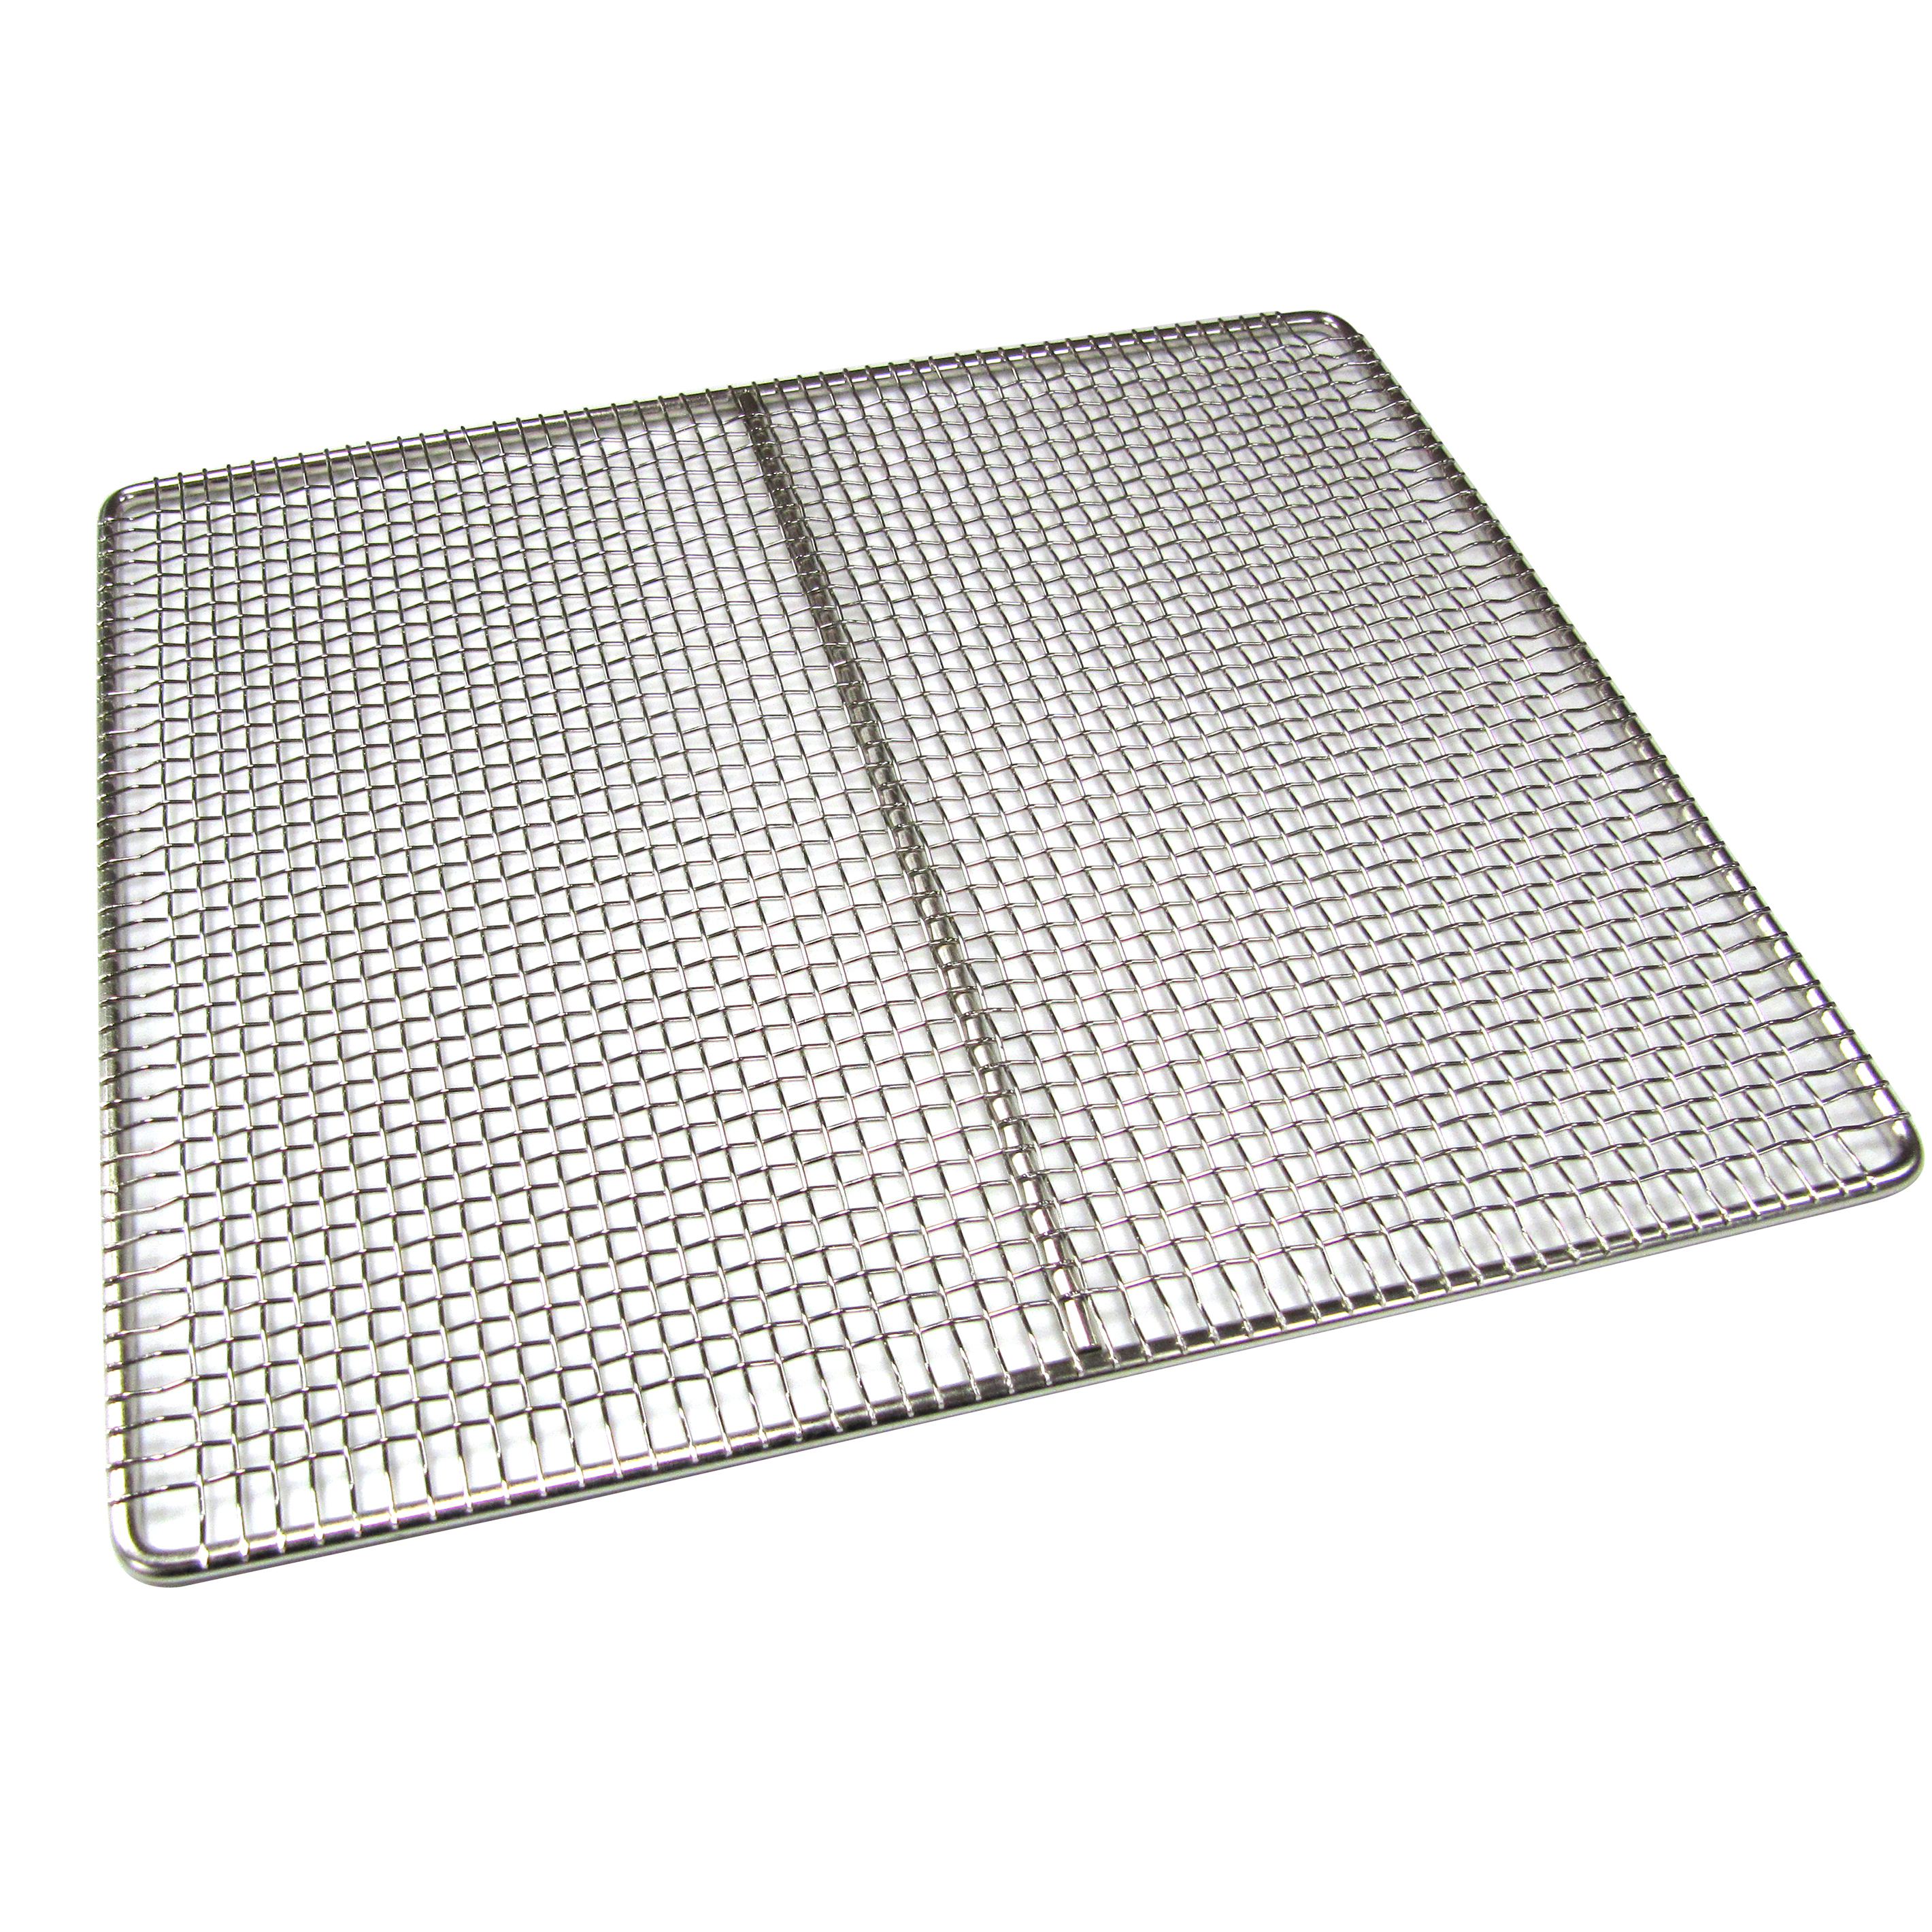 Admiral Craft GR-14H wire pan rack / grate